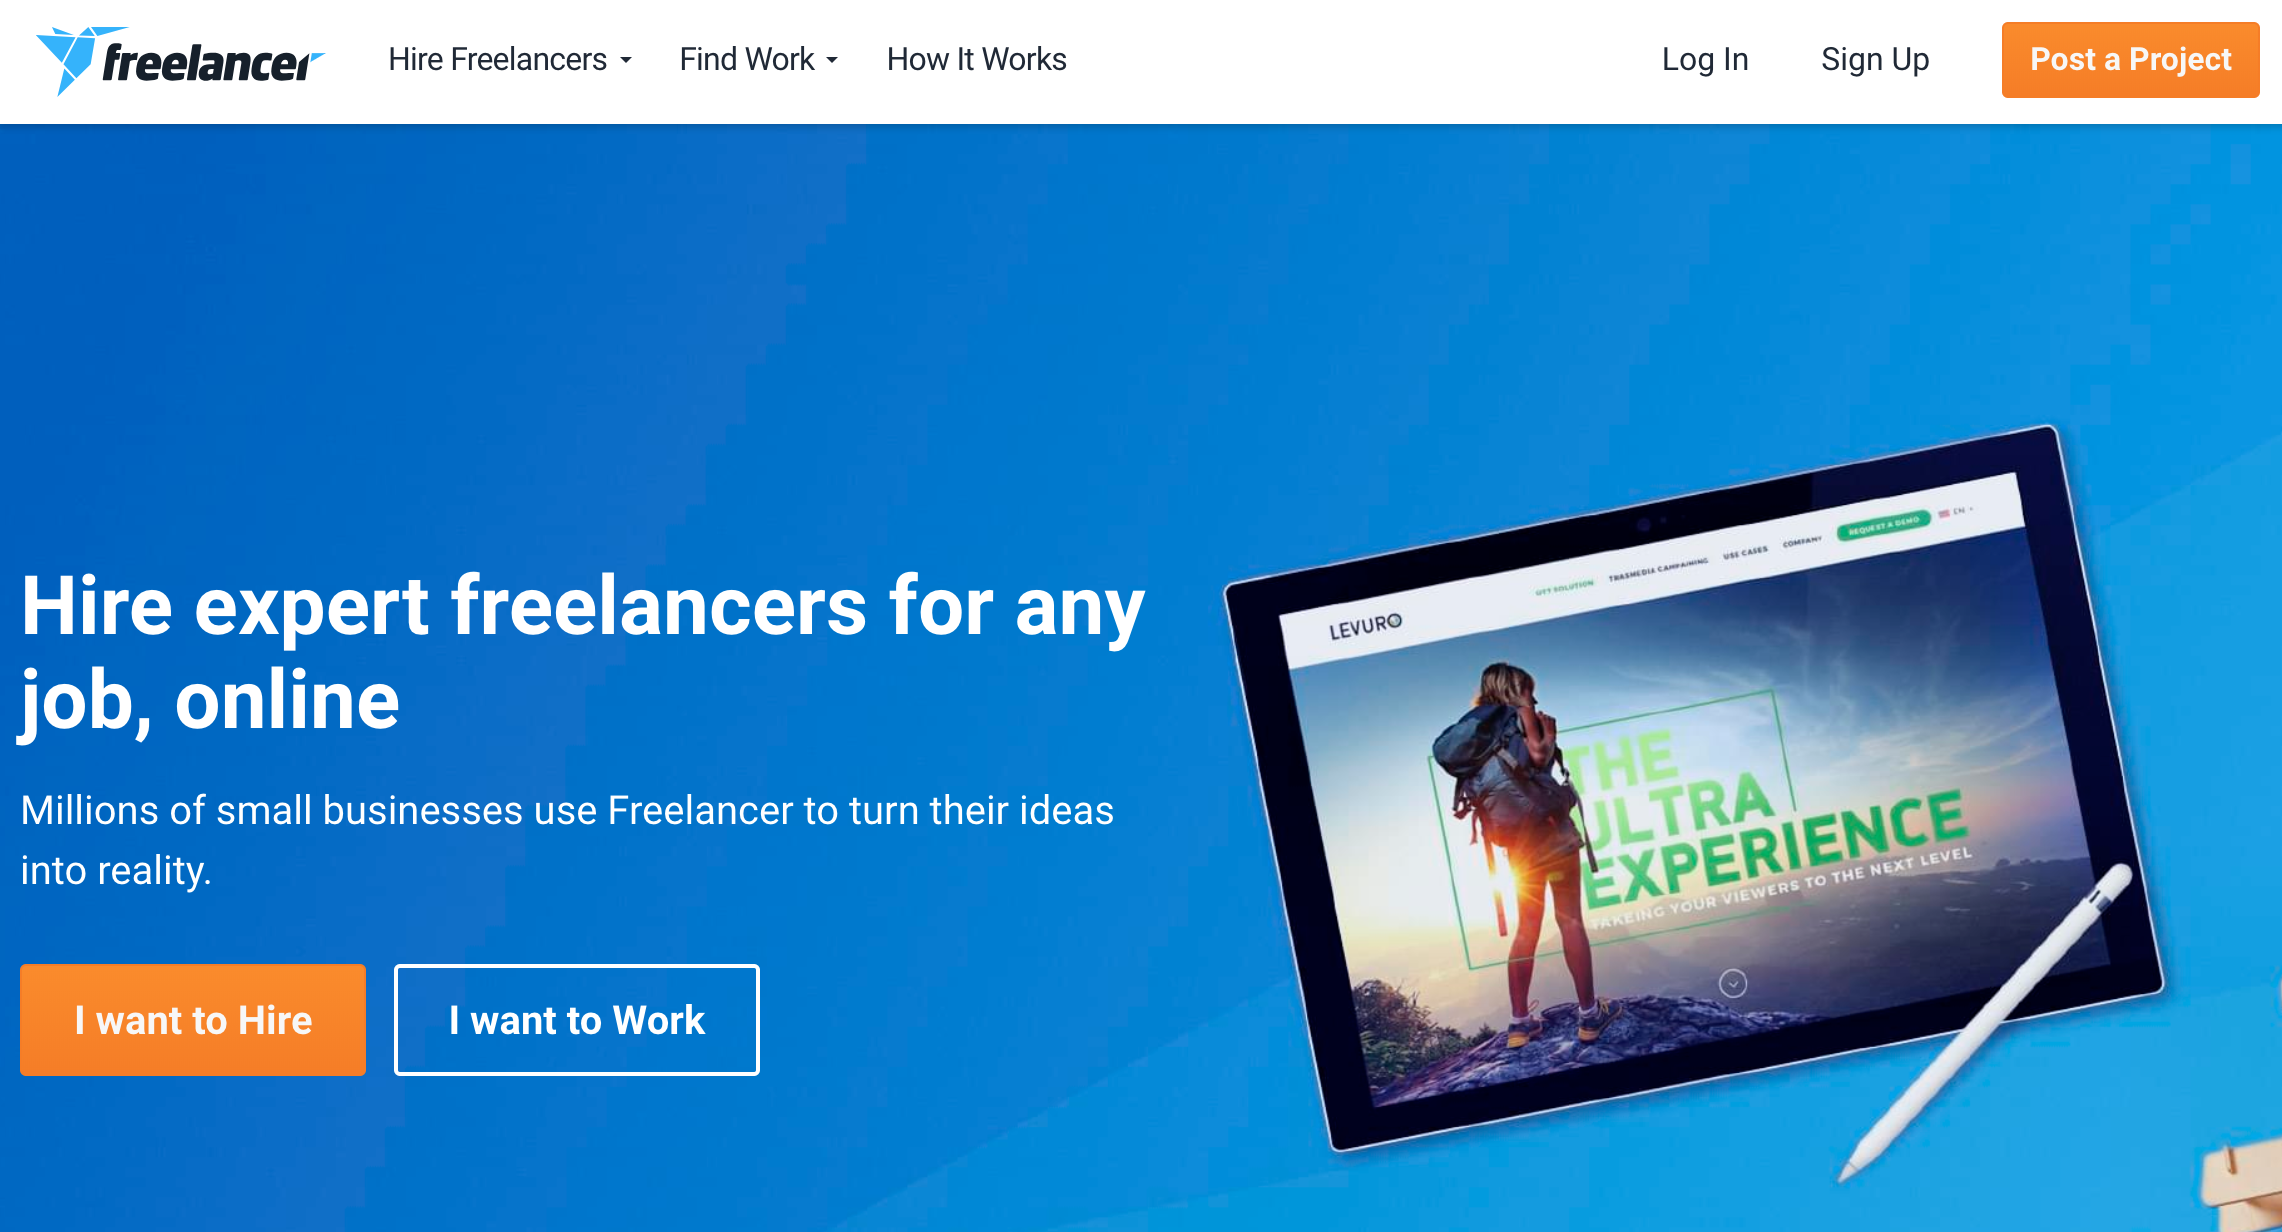 How to find remote jobs, How to find freelance work, Where to find remote jobs